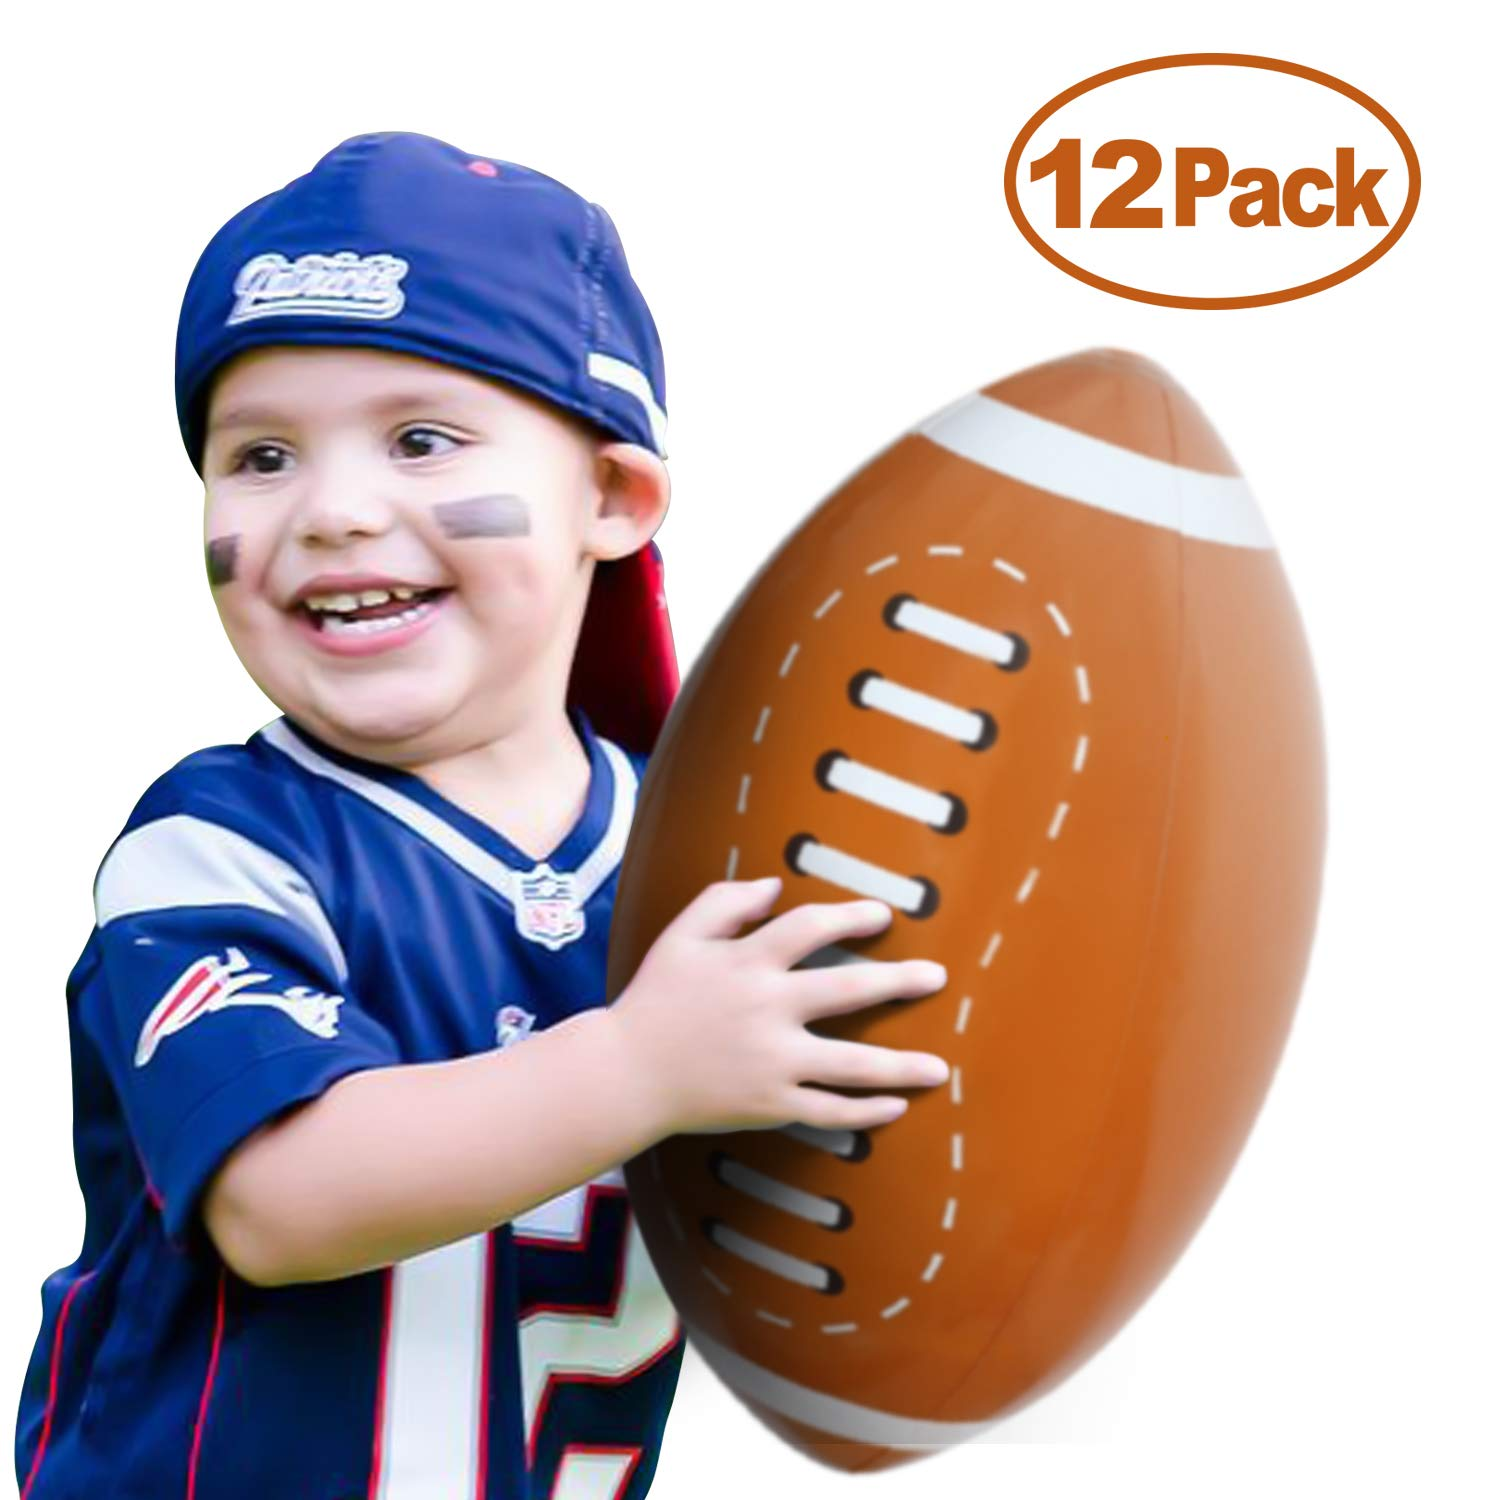 Novelty Place Giant Inflatable Football Set, Beach Balls 16 Inches for Kids (Pack of 12) by Novelty Place